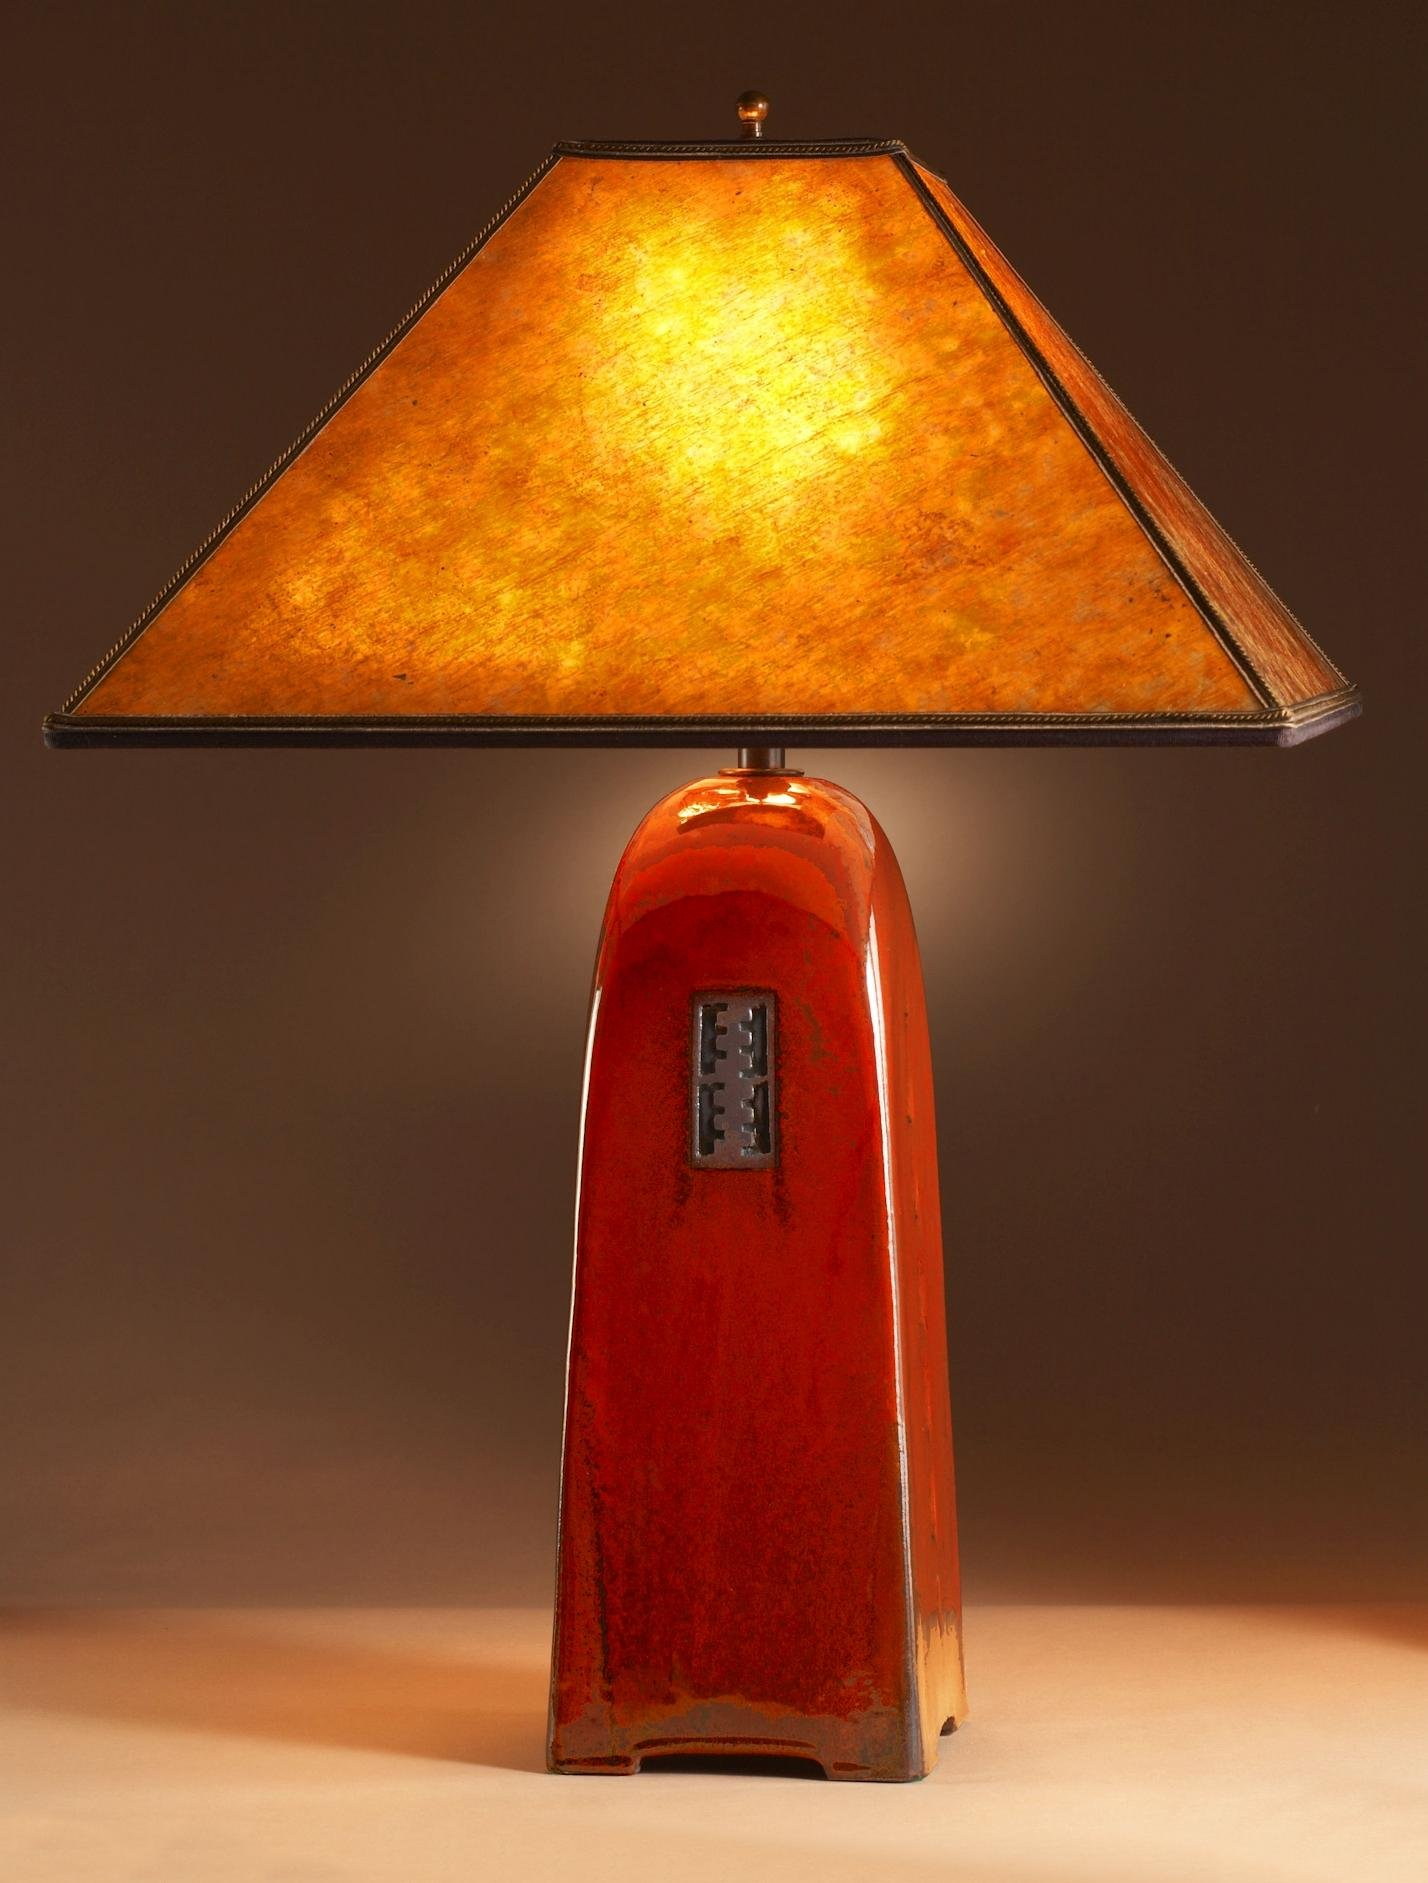 Russet Lamp With Mica Shade By Jim Webb Ceramic Lamp